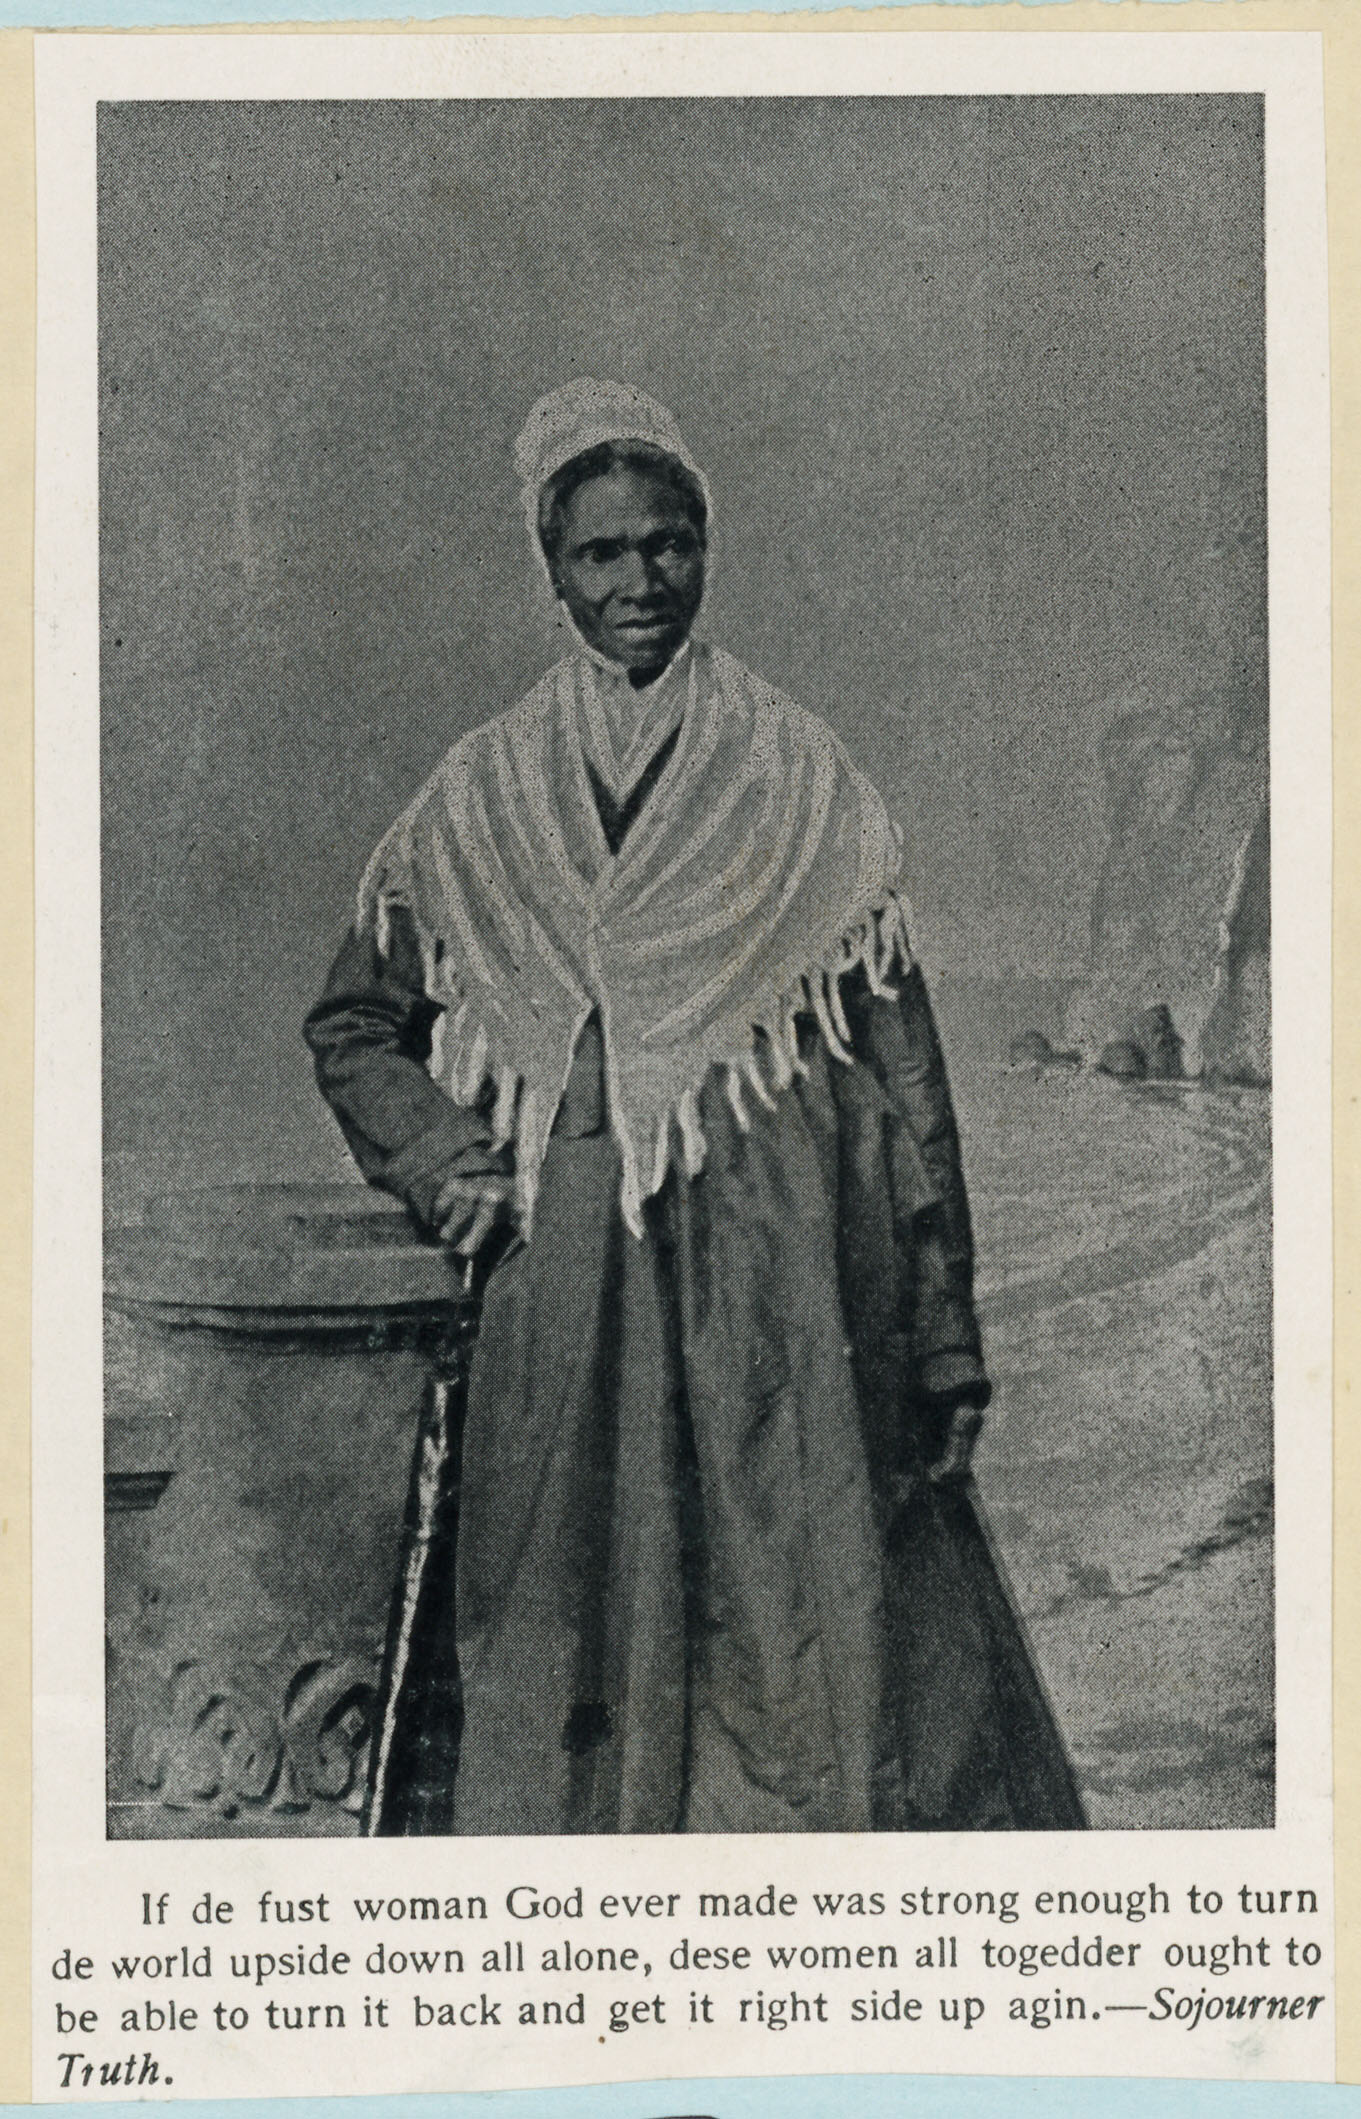 sojourner truth essays Sojourner truth essays in an ever changing world , the evolution of man has been the most drastic in terms of technological, environmental, and emotional advancement.